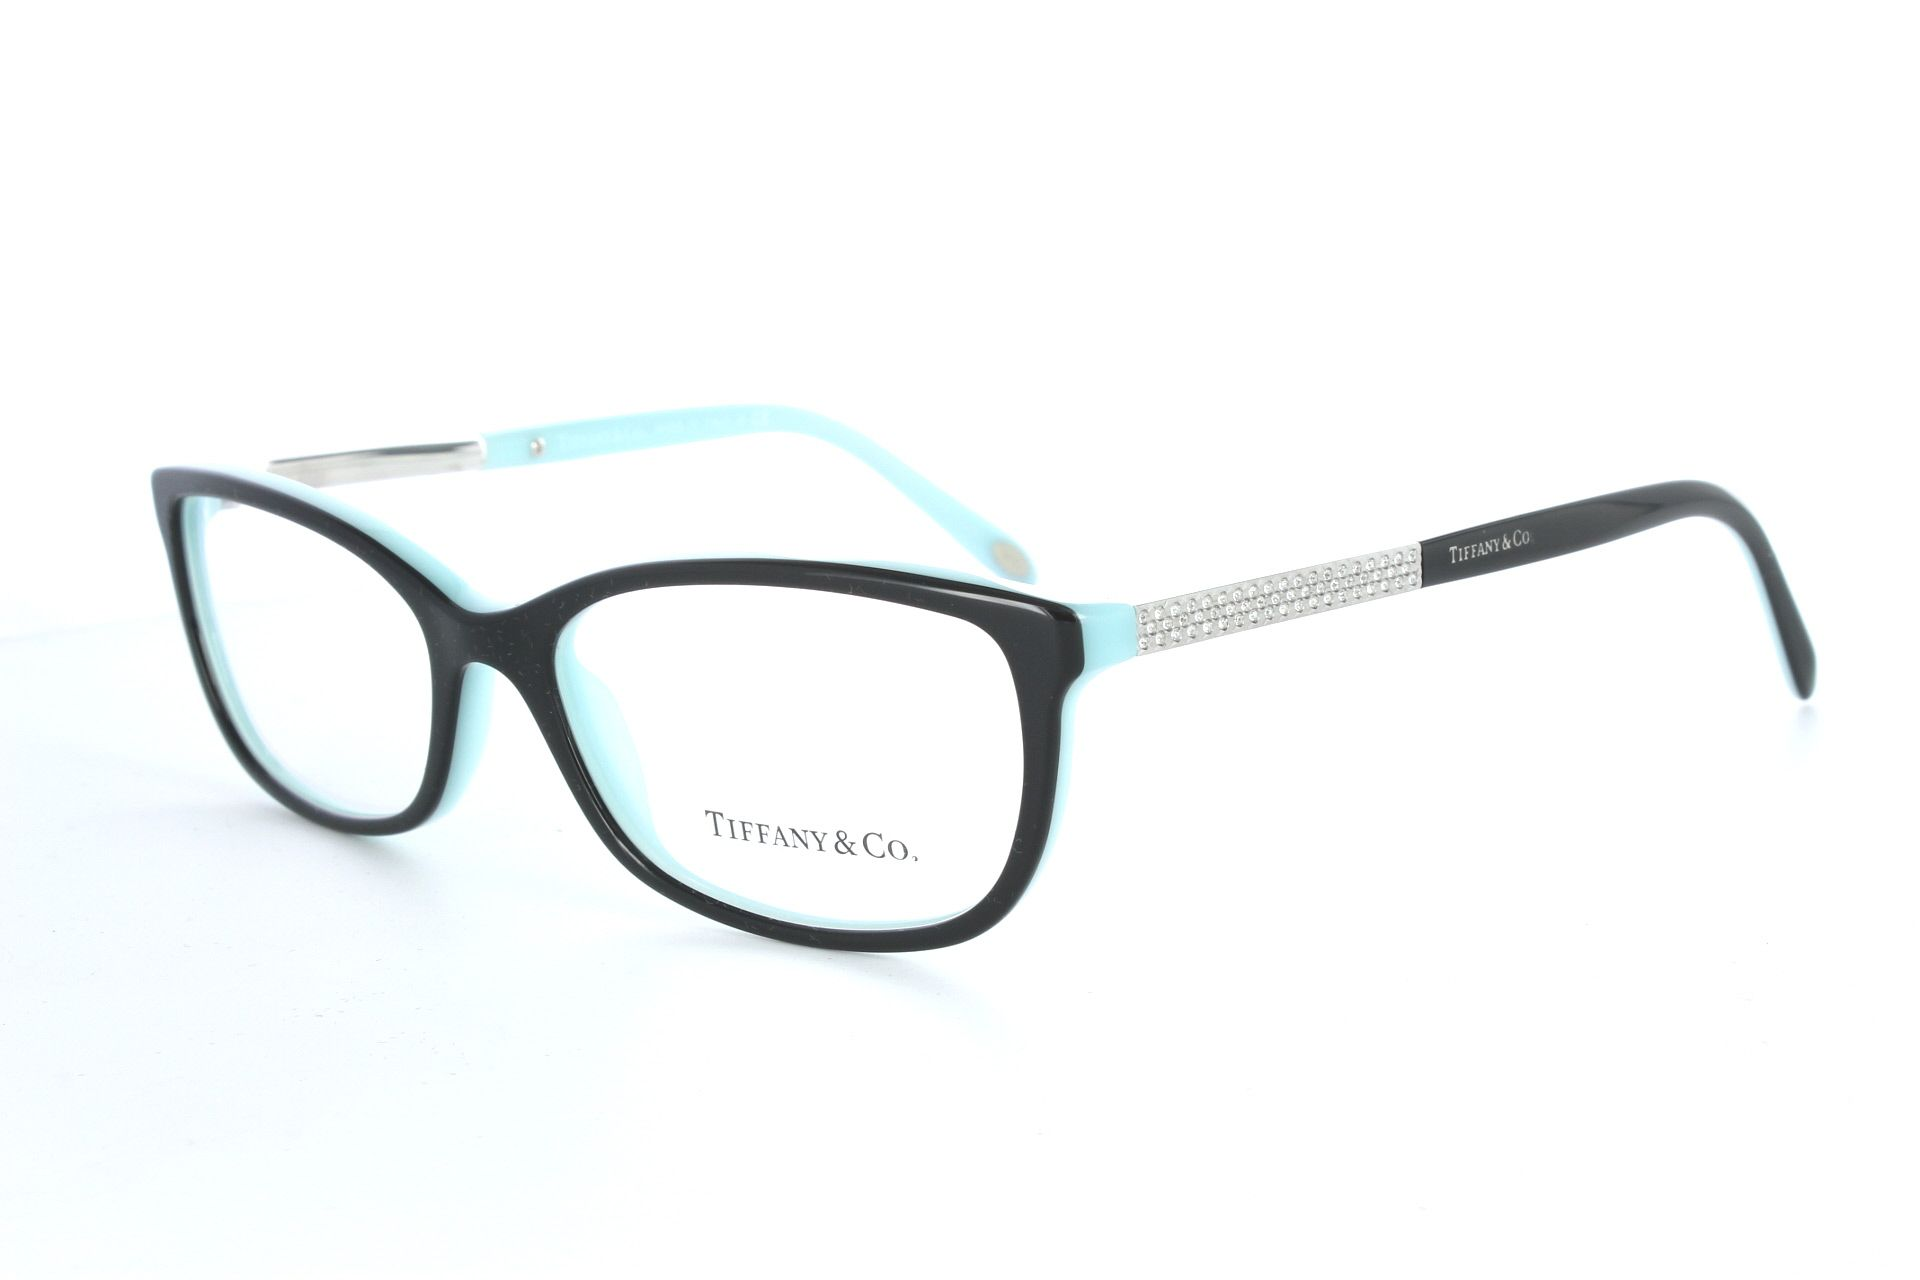 432cf84a95 Tiffany and Co Eyeglass Frames